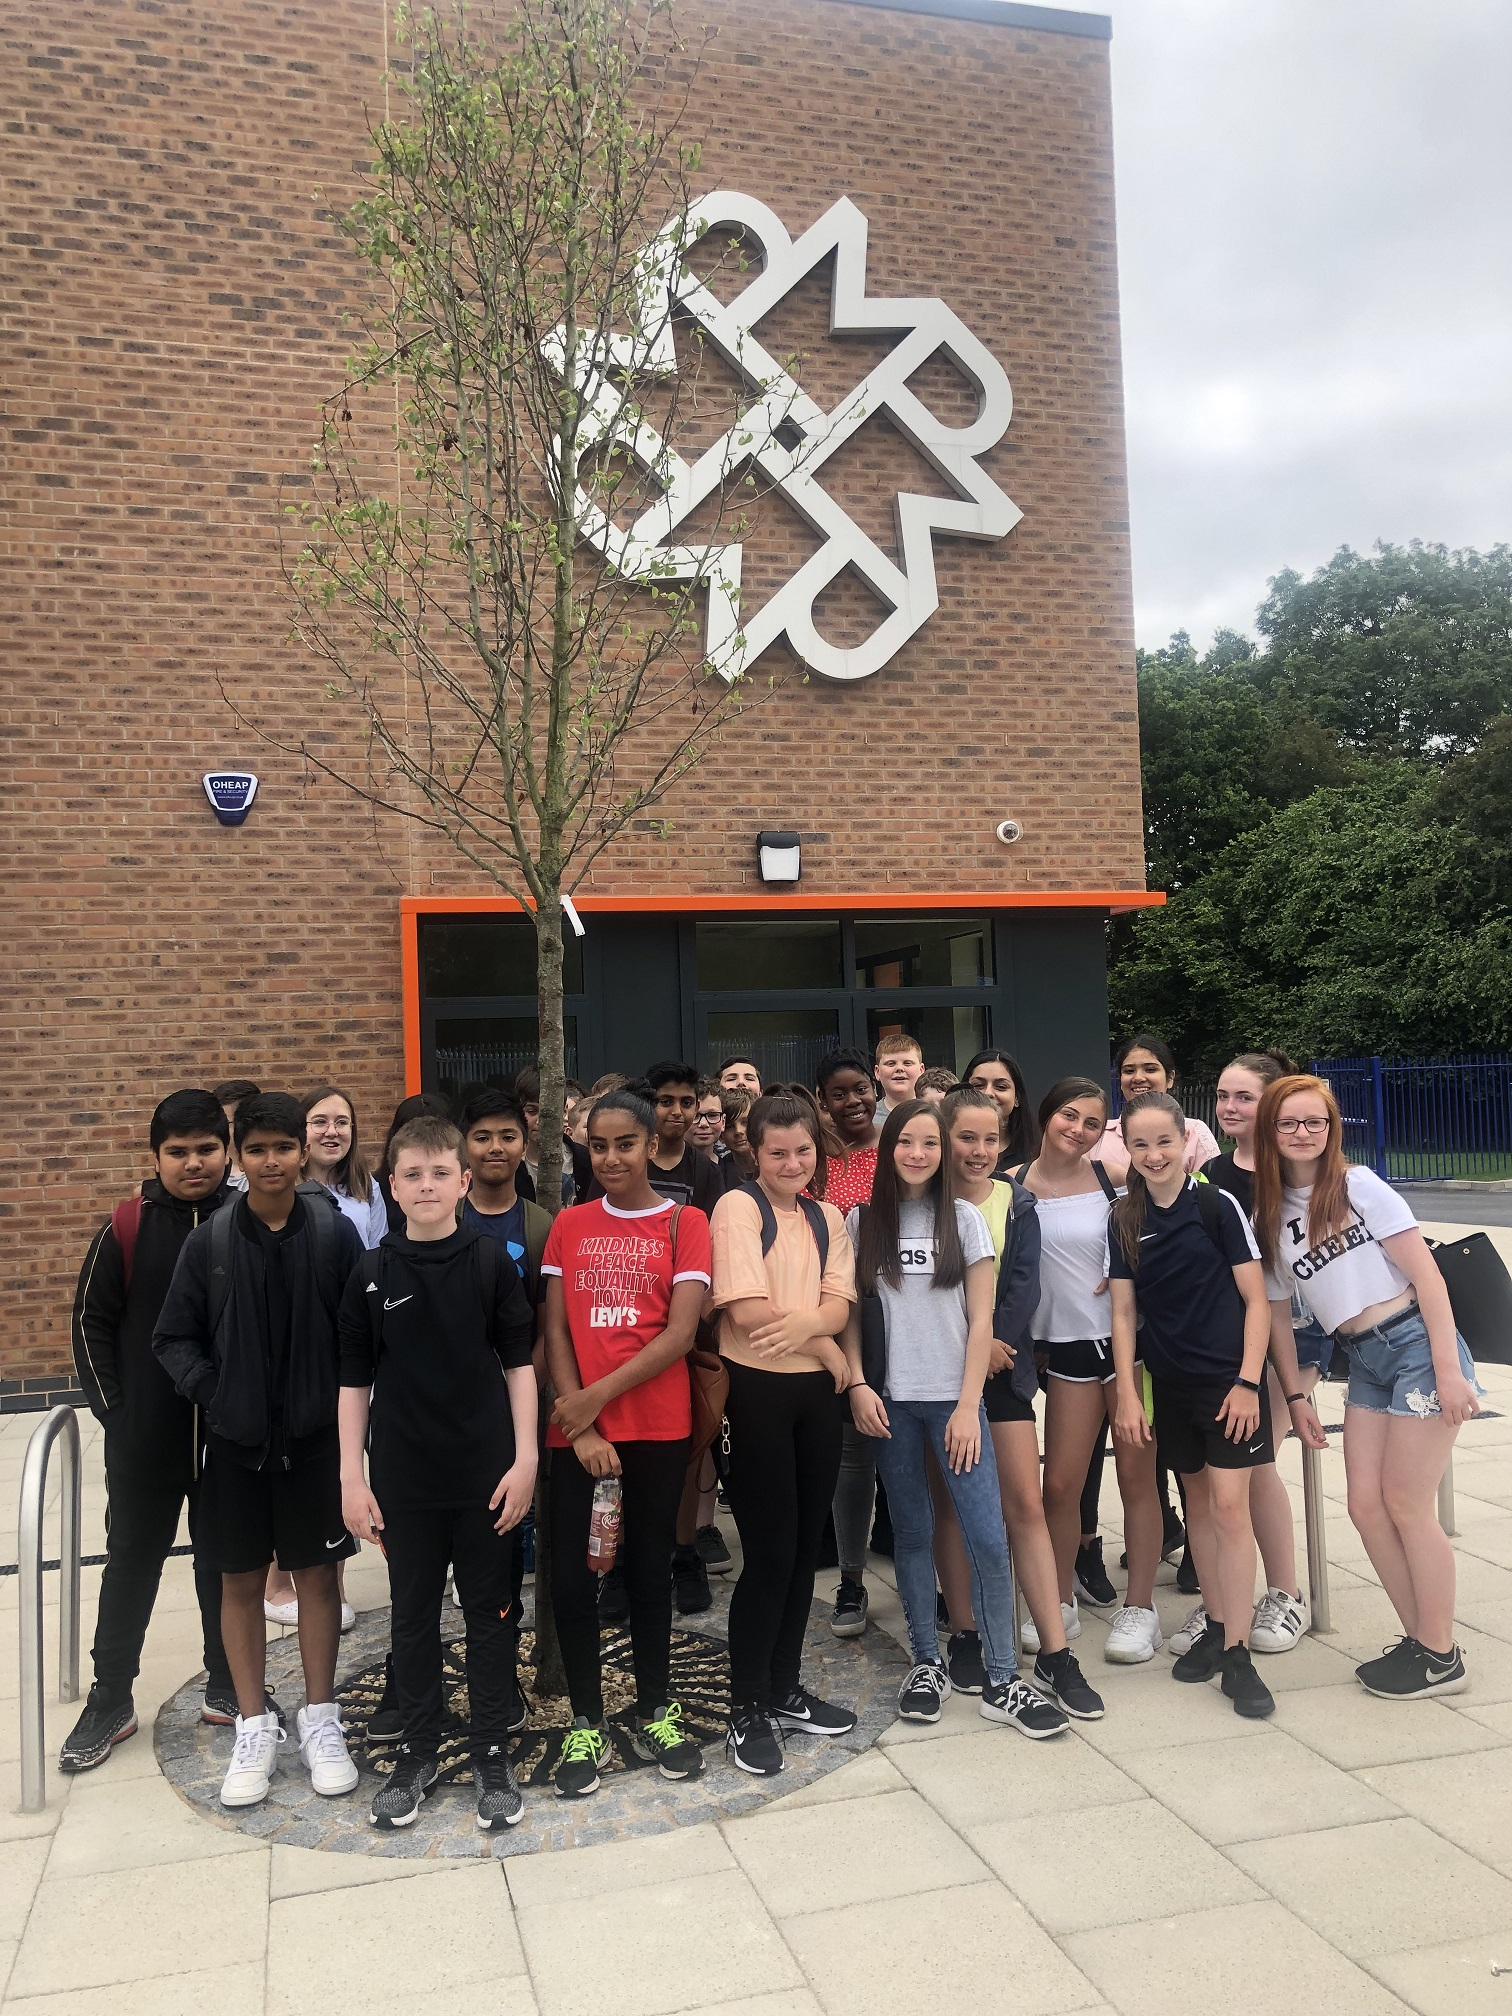 Year 7 pupils outside the new £9m Maple Park at Murray Park School in Derby. Penguin PR: public relations, media and communications